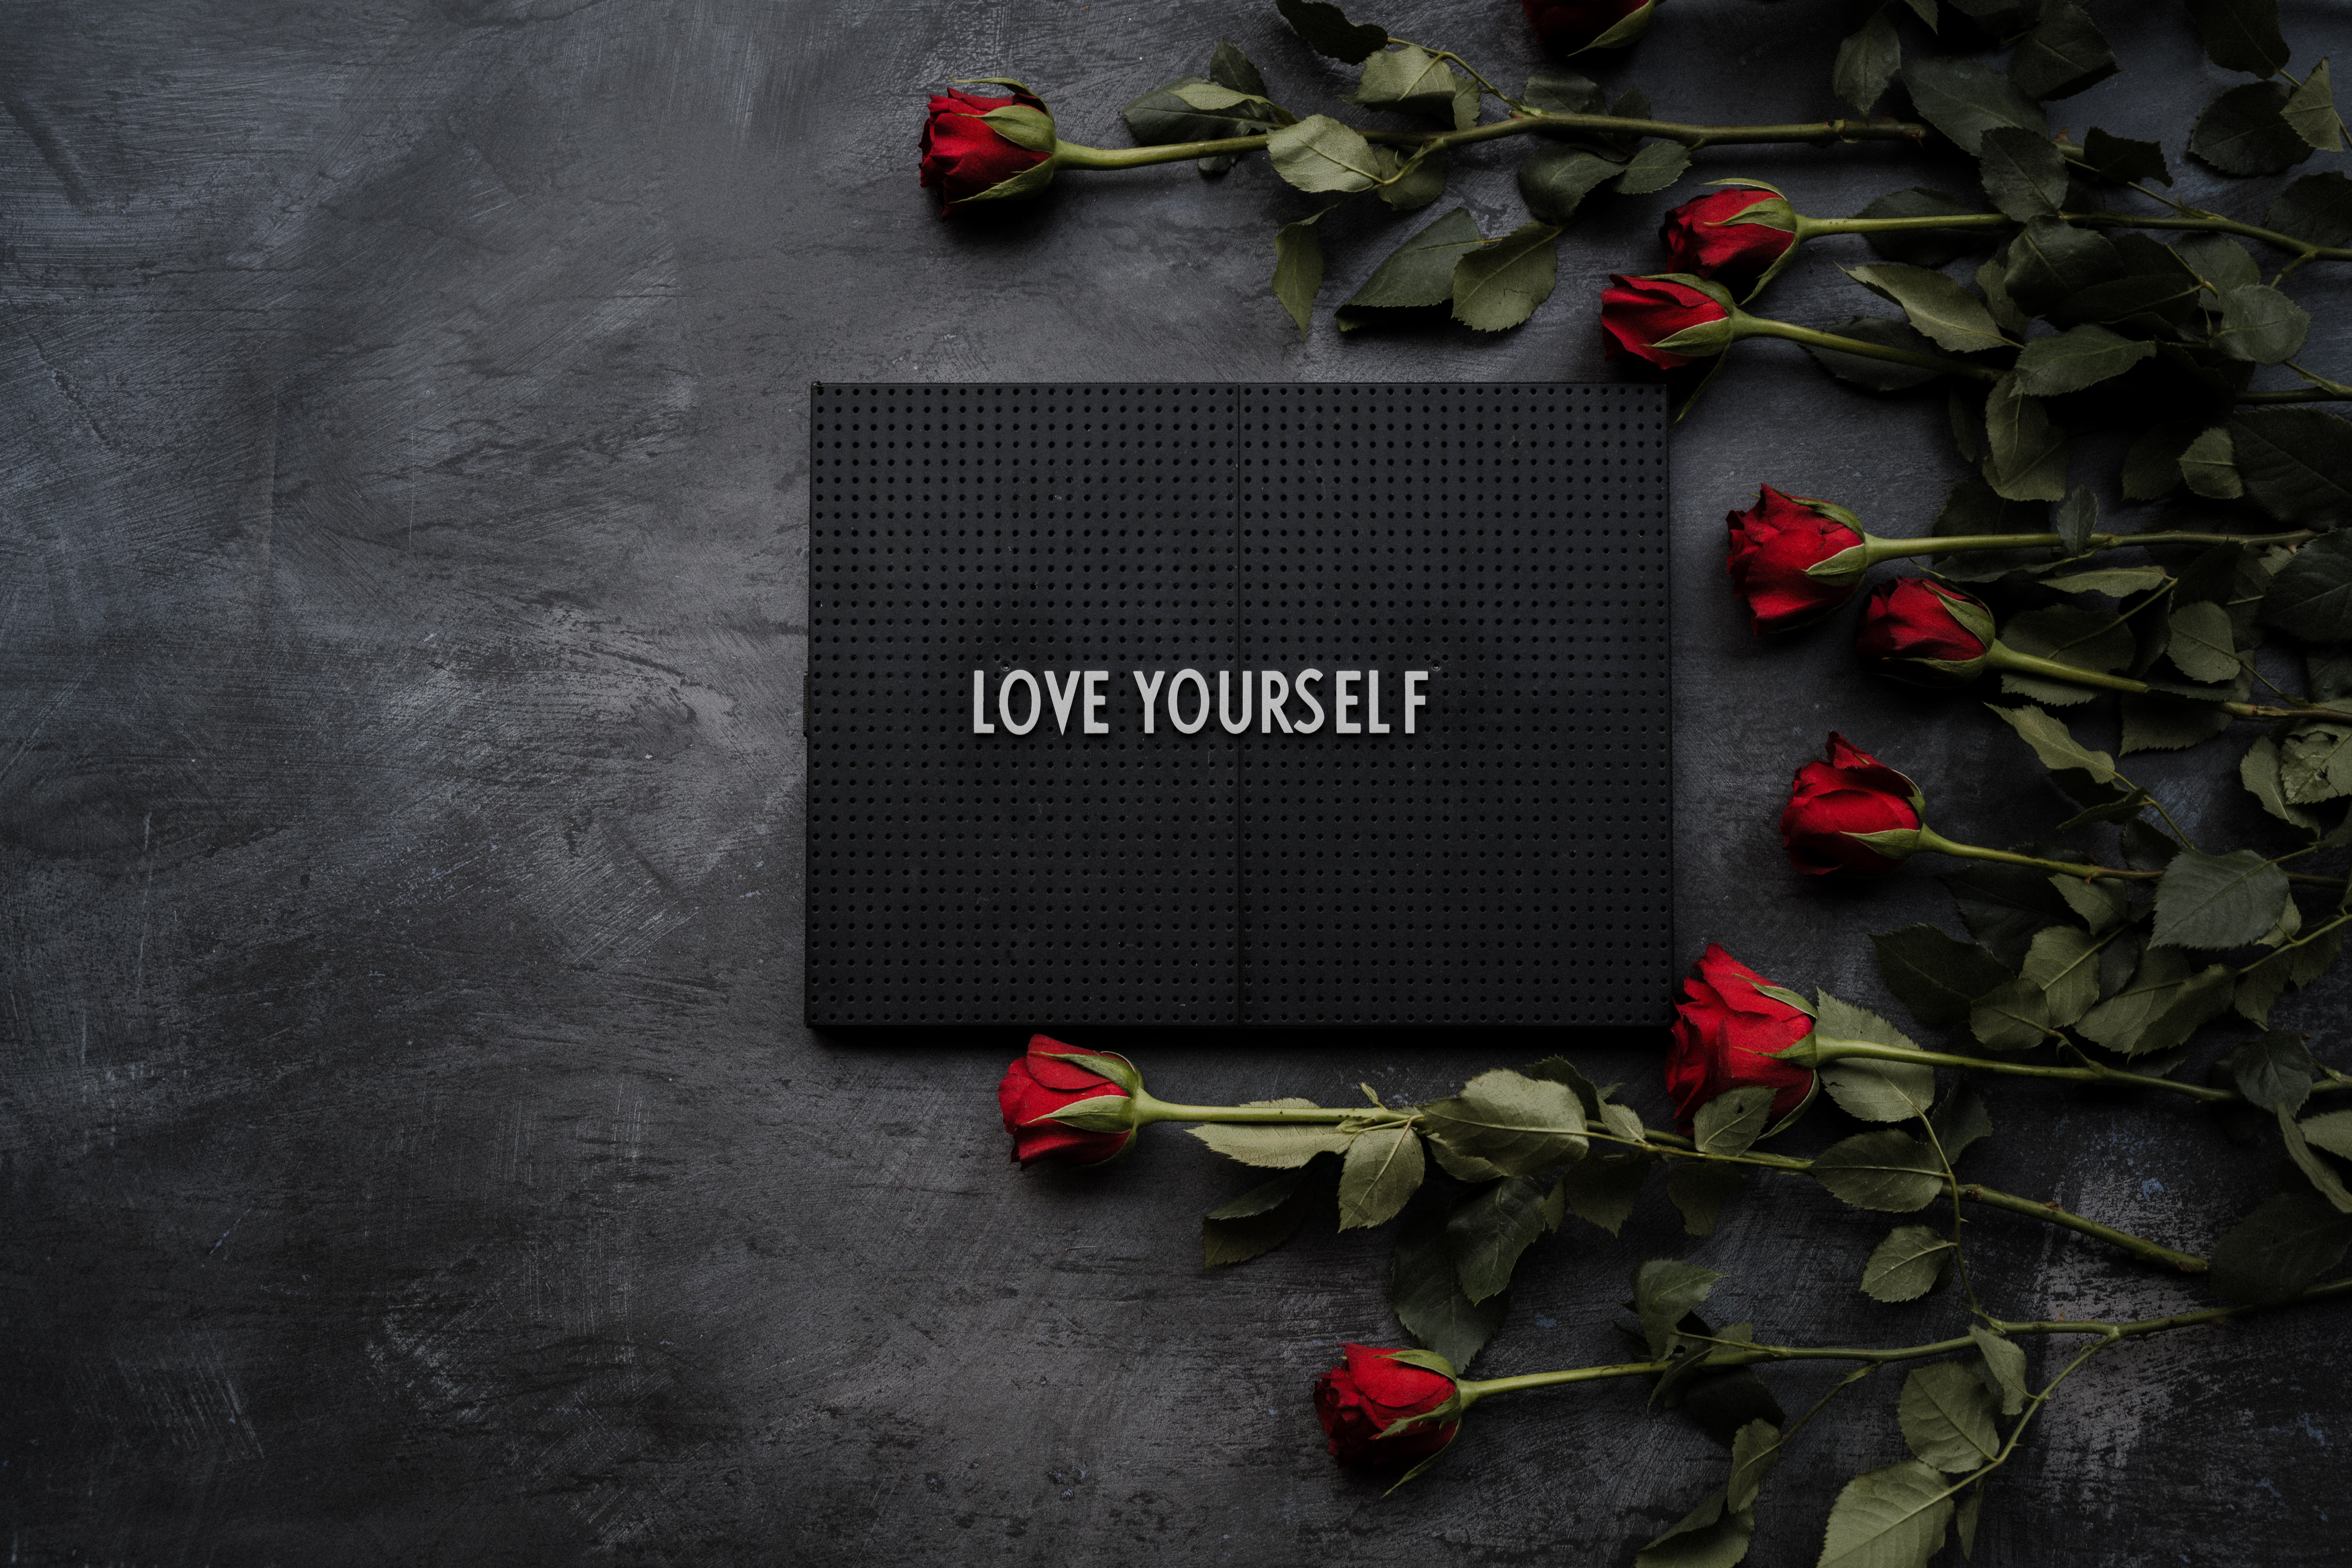 be true to yourself for self care and self worth